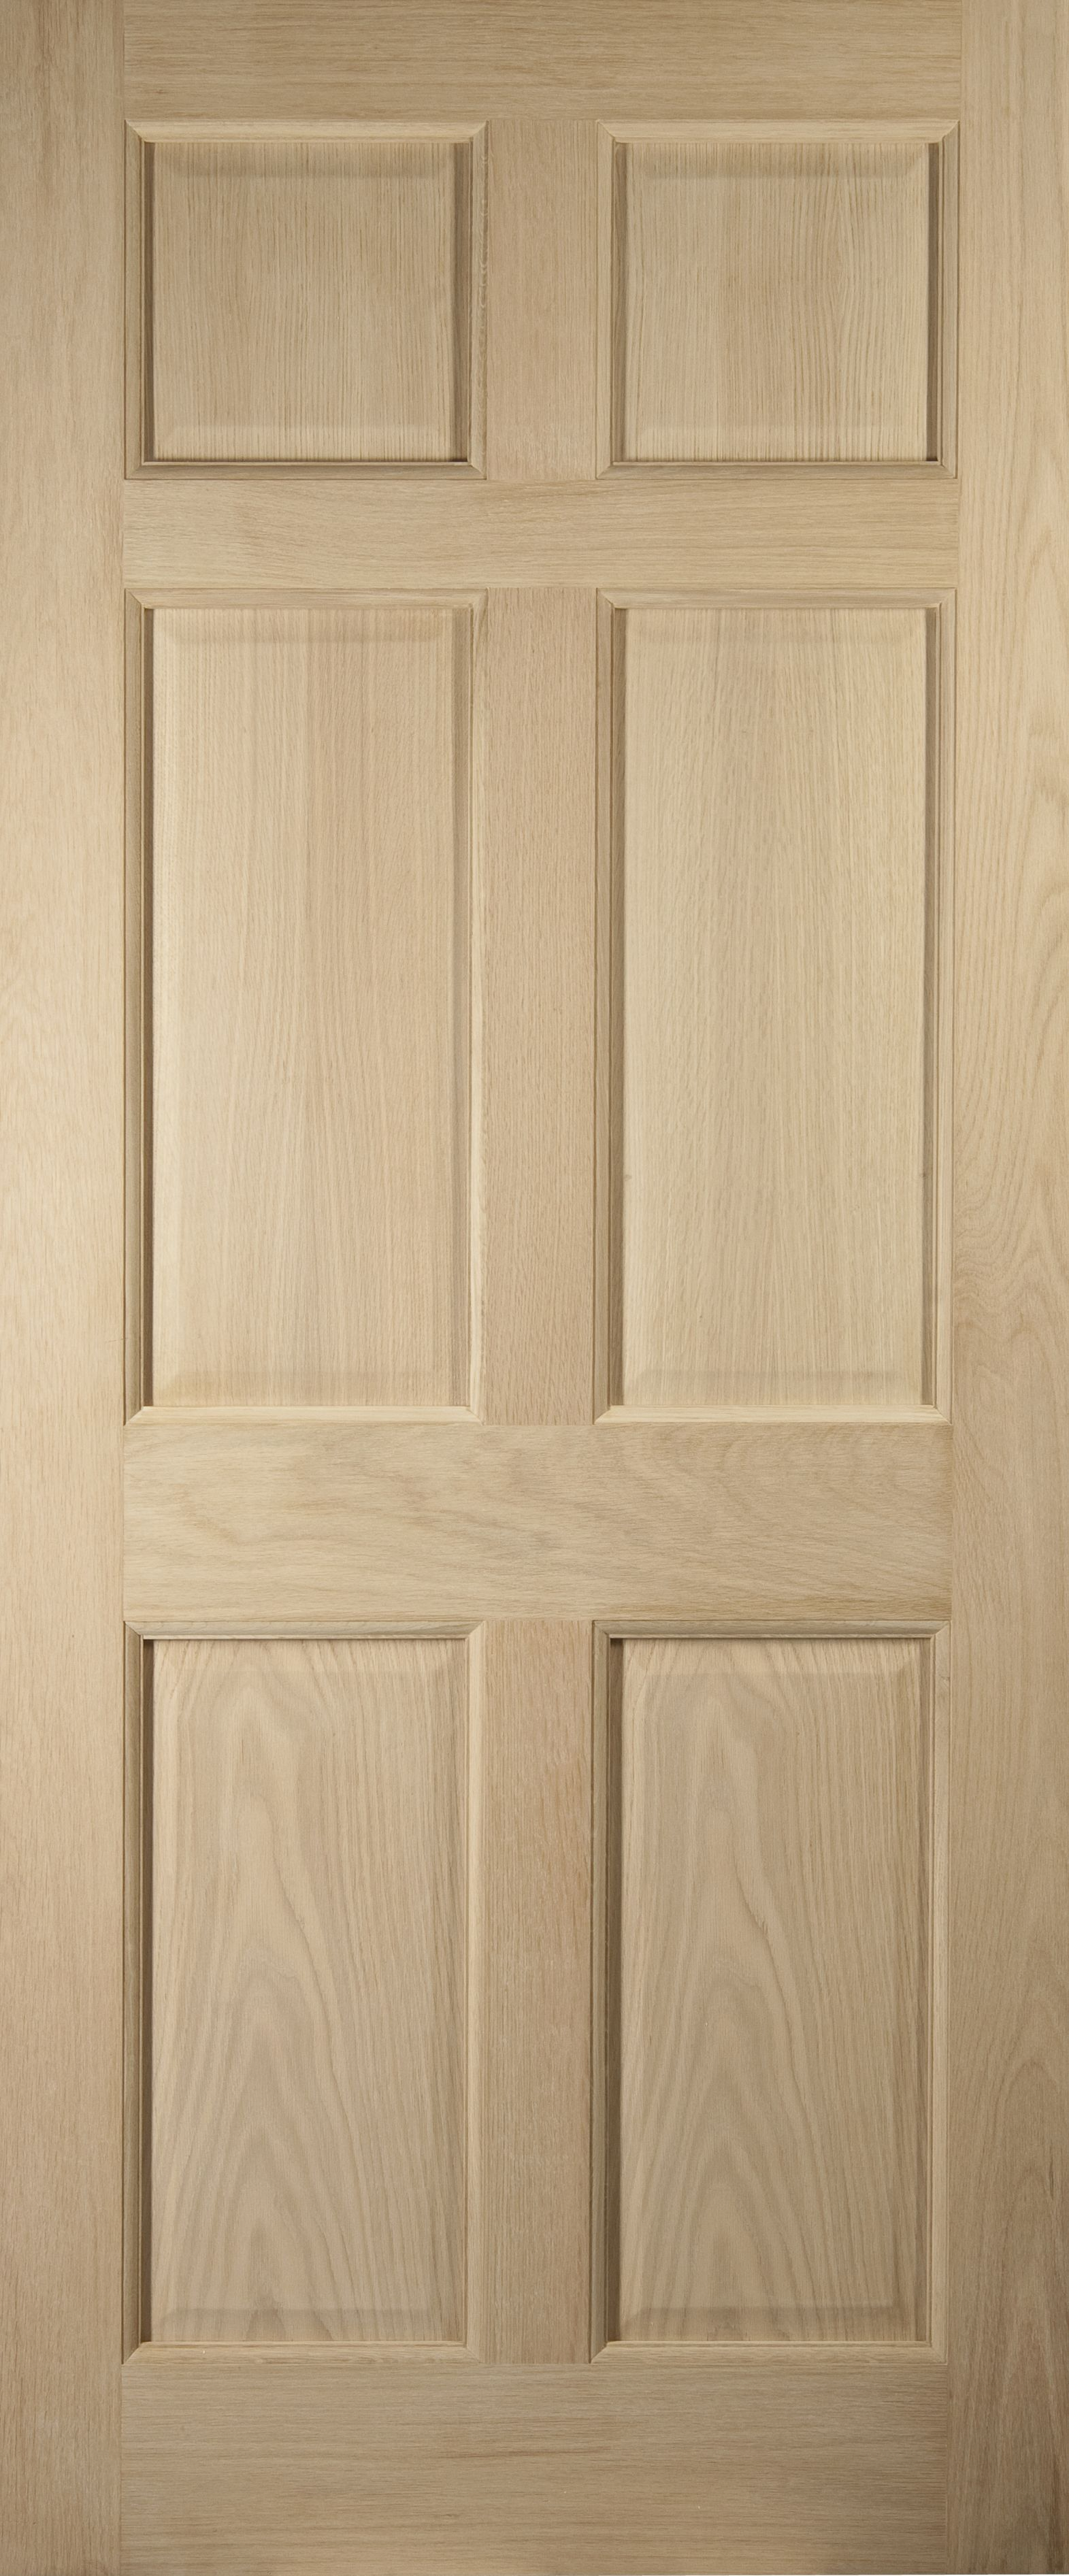 American white oak veneer timber glazed external back door for White back door